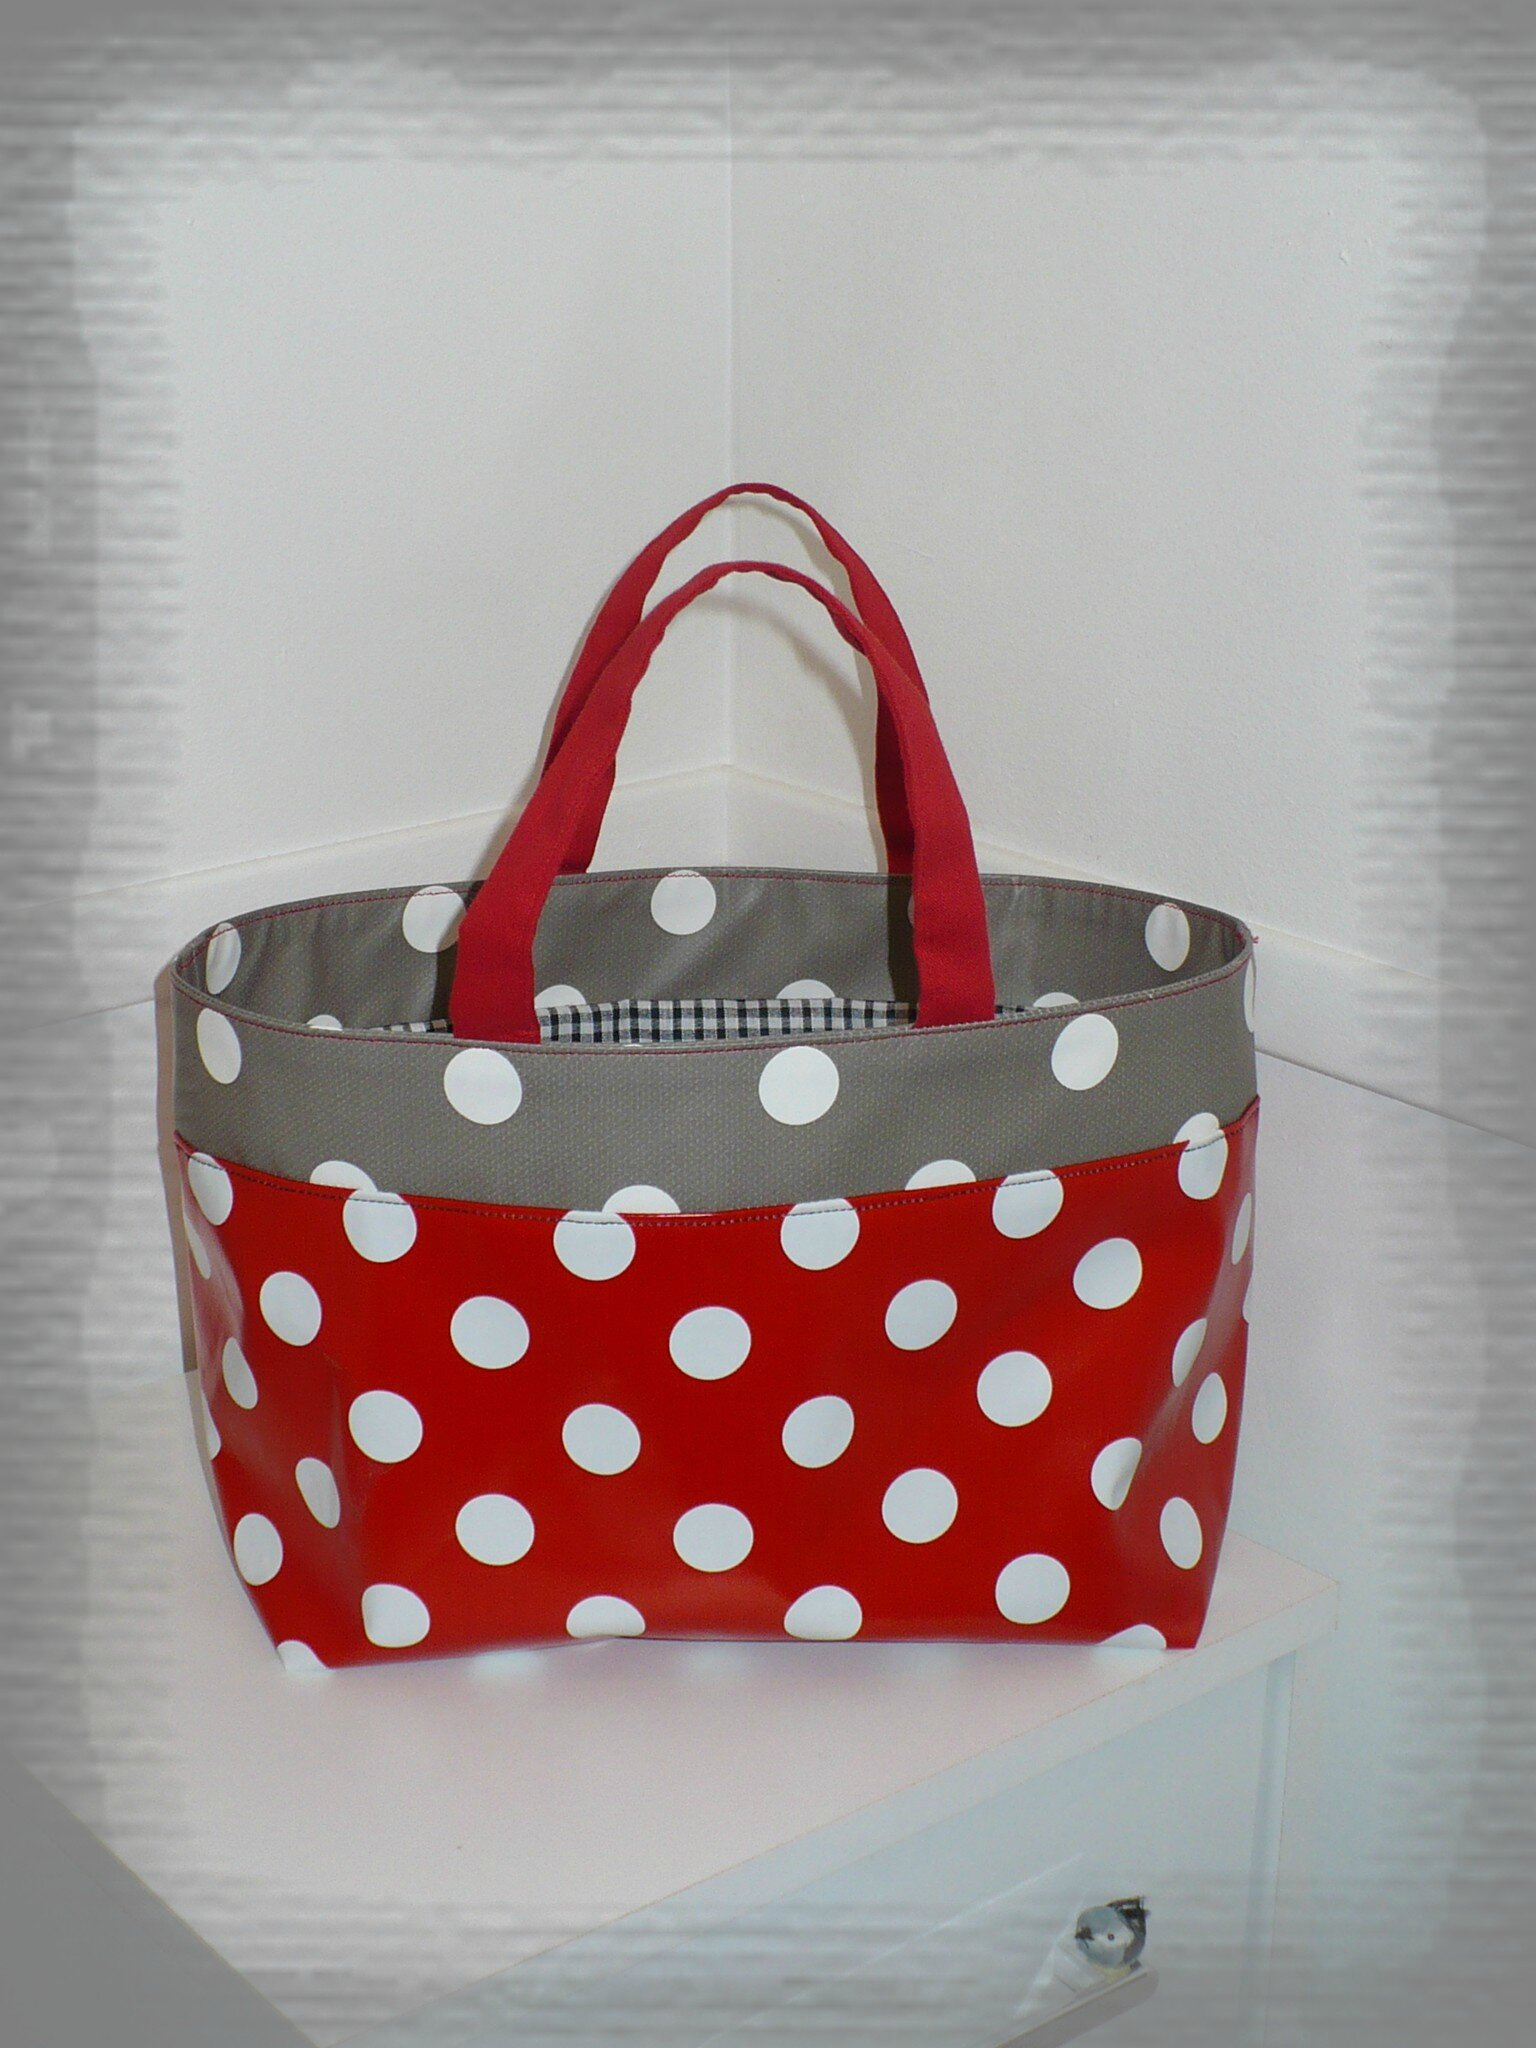 Pitit lunch bag ma pitite couture - Sac en toile ciree ...